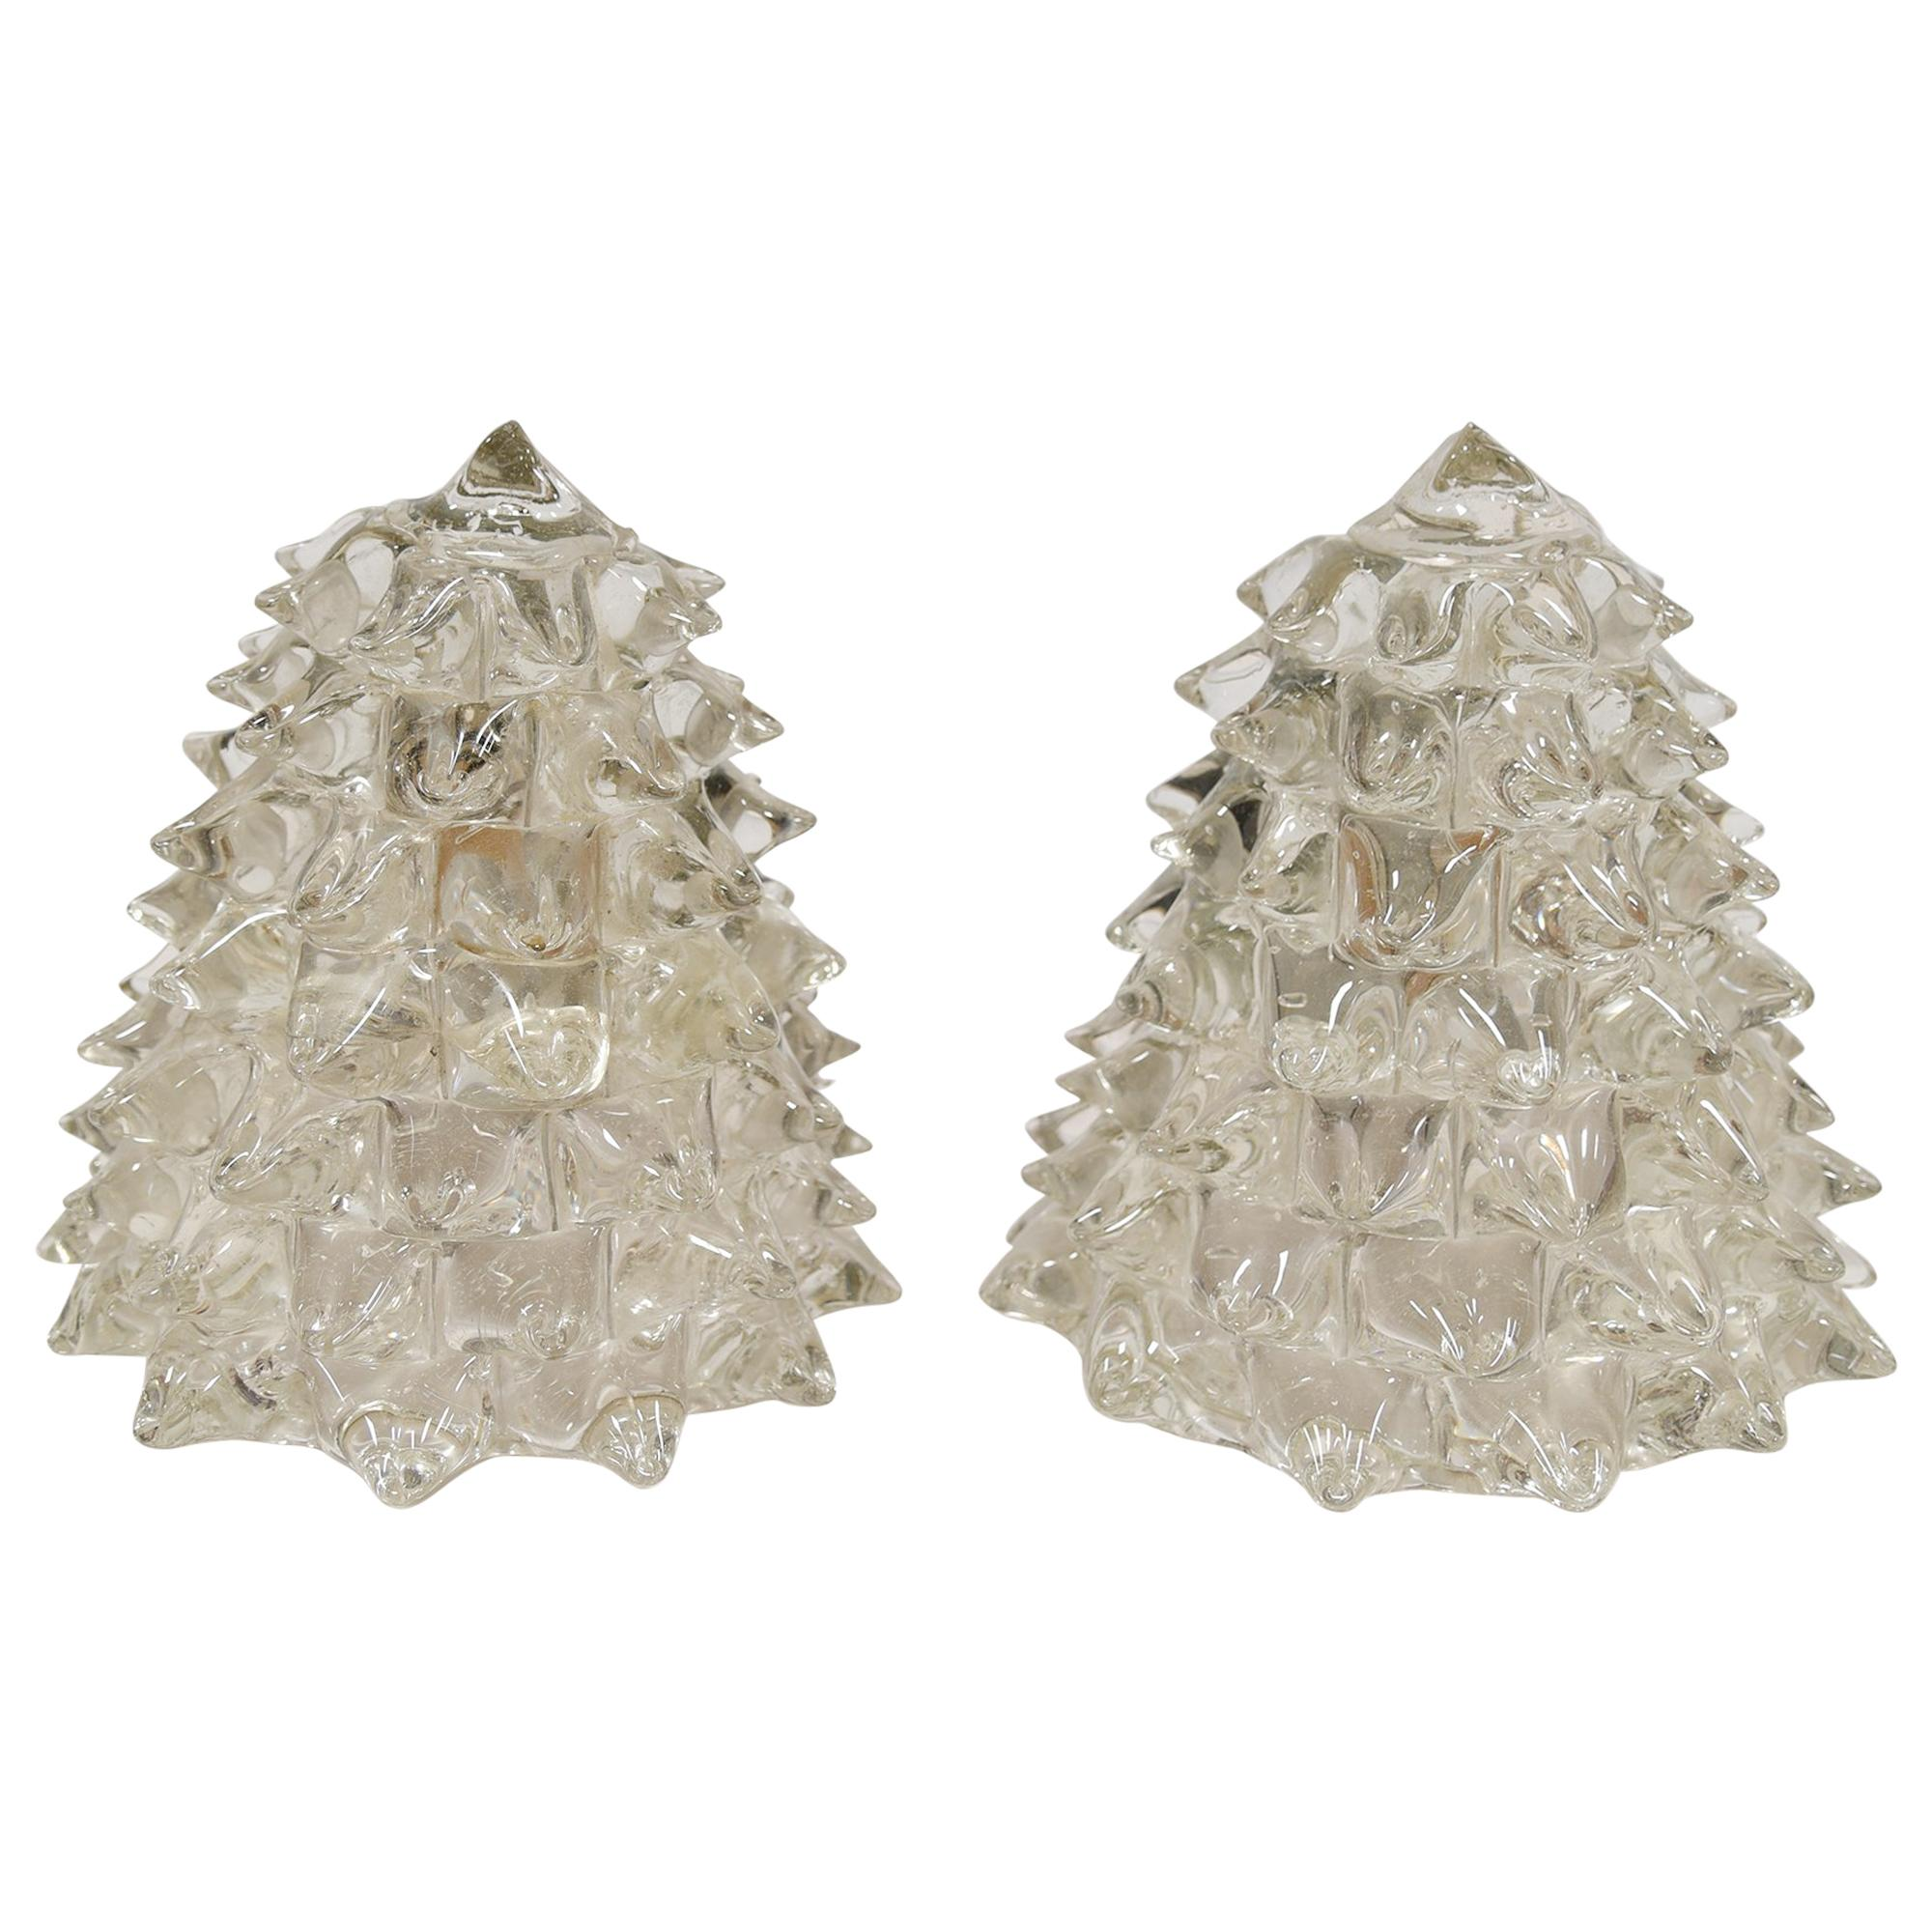 [PAIR] of ARCHIMEDES SEGUSO Glass Wall Sconces